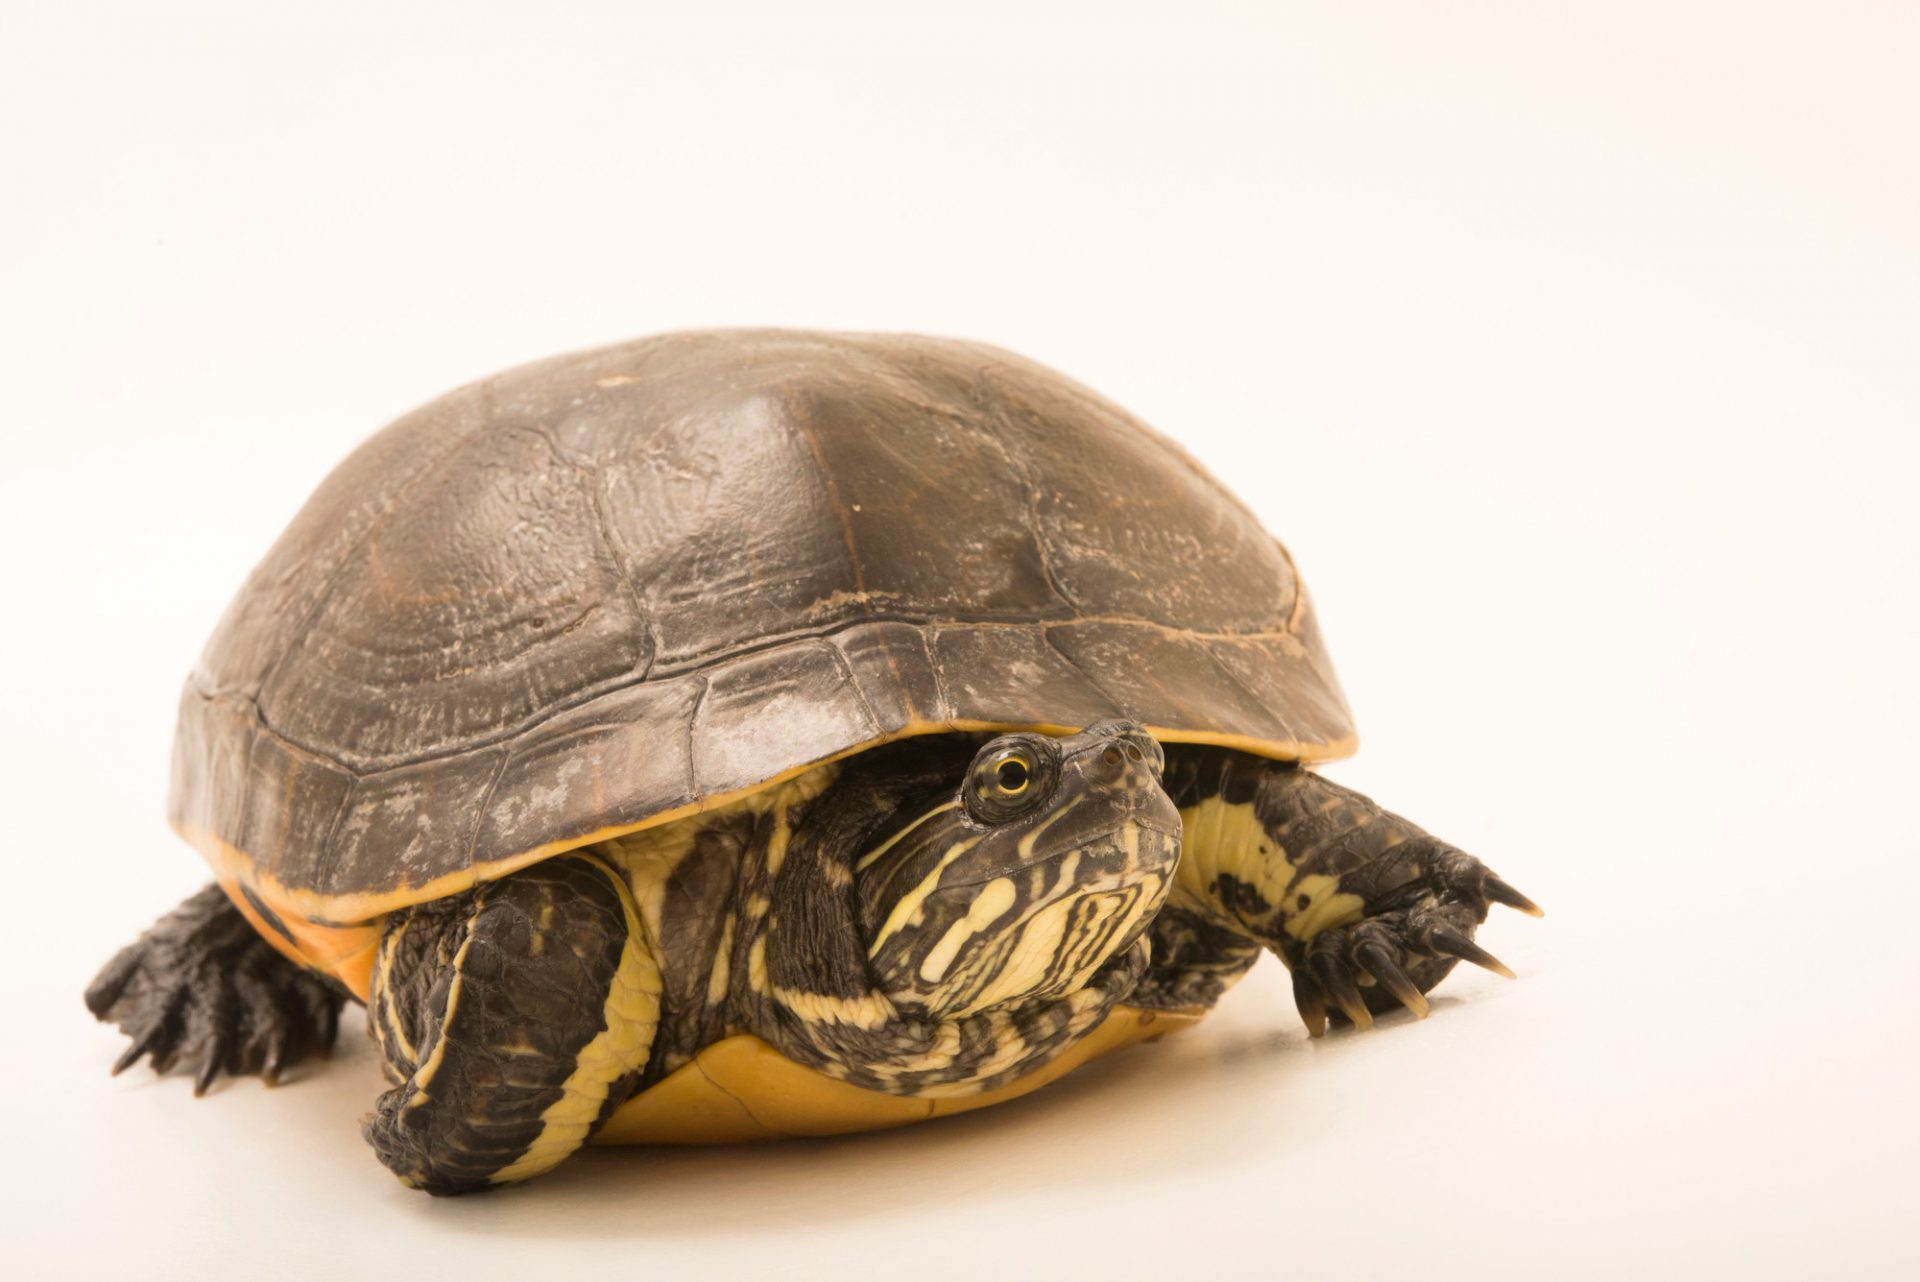 Photo: A male western chicken turtle (Deirochelys reticularia miaria) at the Houston Zoo.